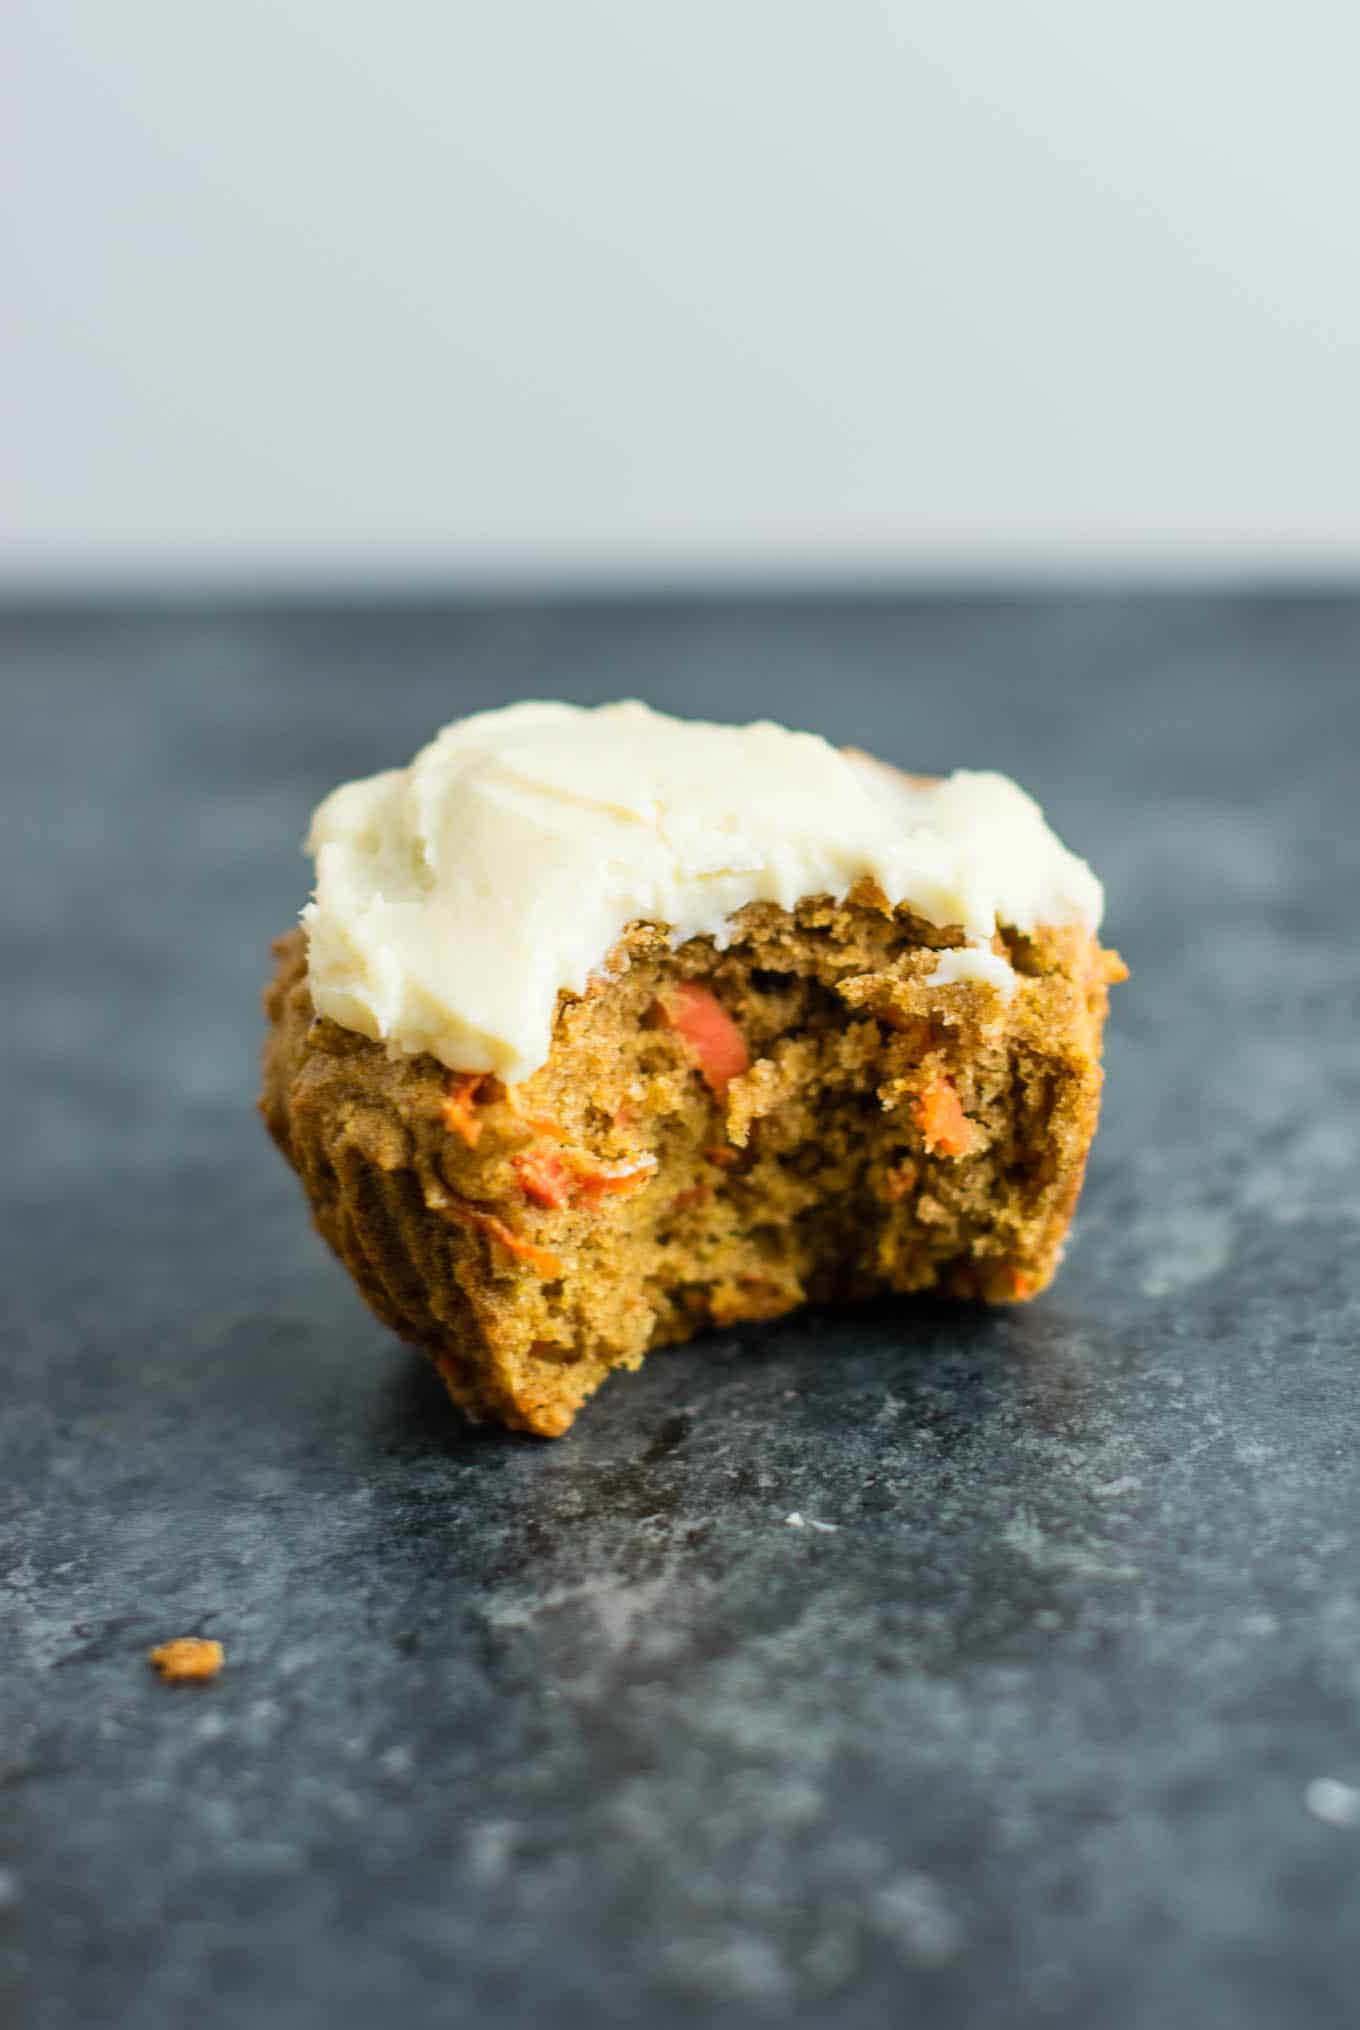 Whole wheat carrot cake muffins with cream cheese frosting - basically feel like I'm eating dessert for breakfast! #muffins #carrotcakemuffins #carrotcake #wholewheat #creamcheesefrosting #breakfast #vegetarian